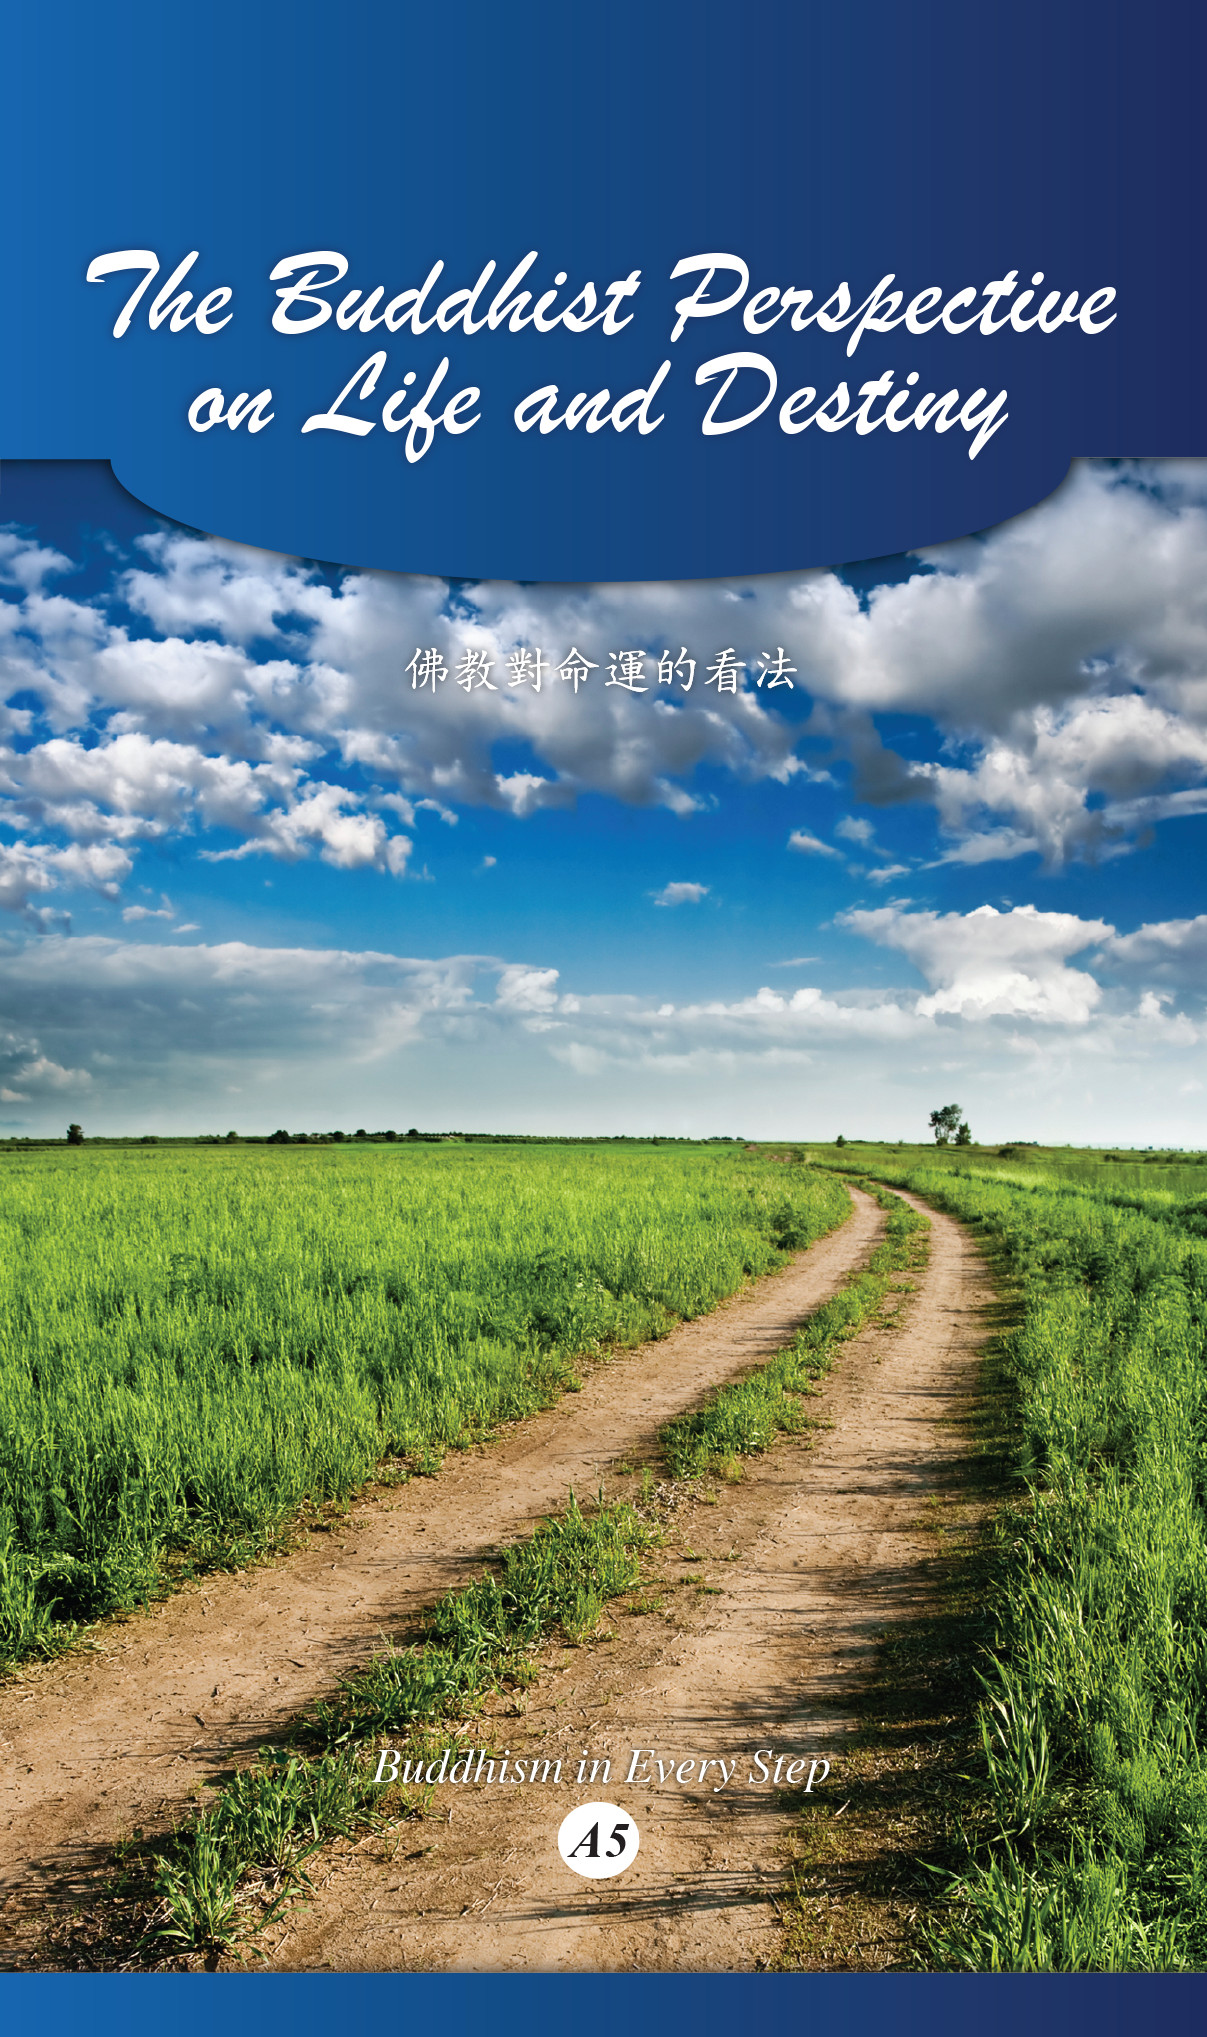 The Buddhist Perspective on Life and Destiny